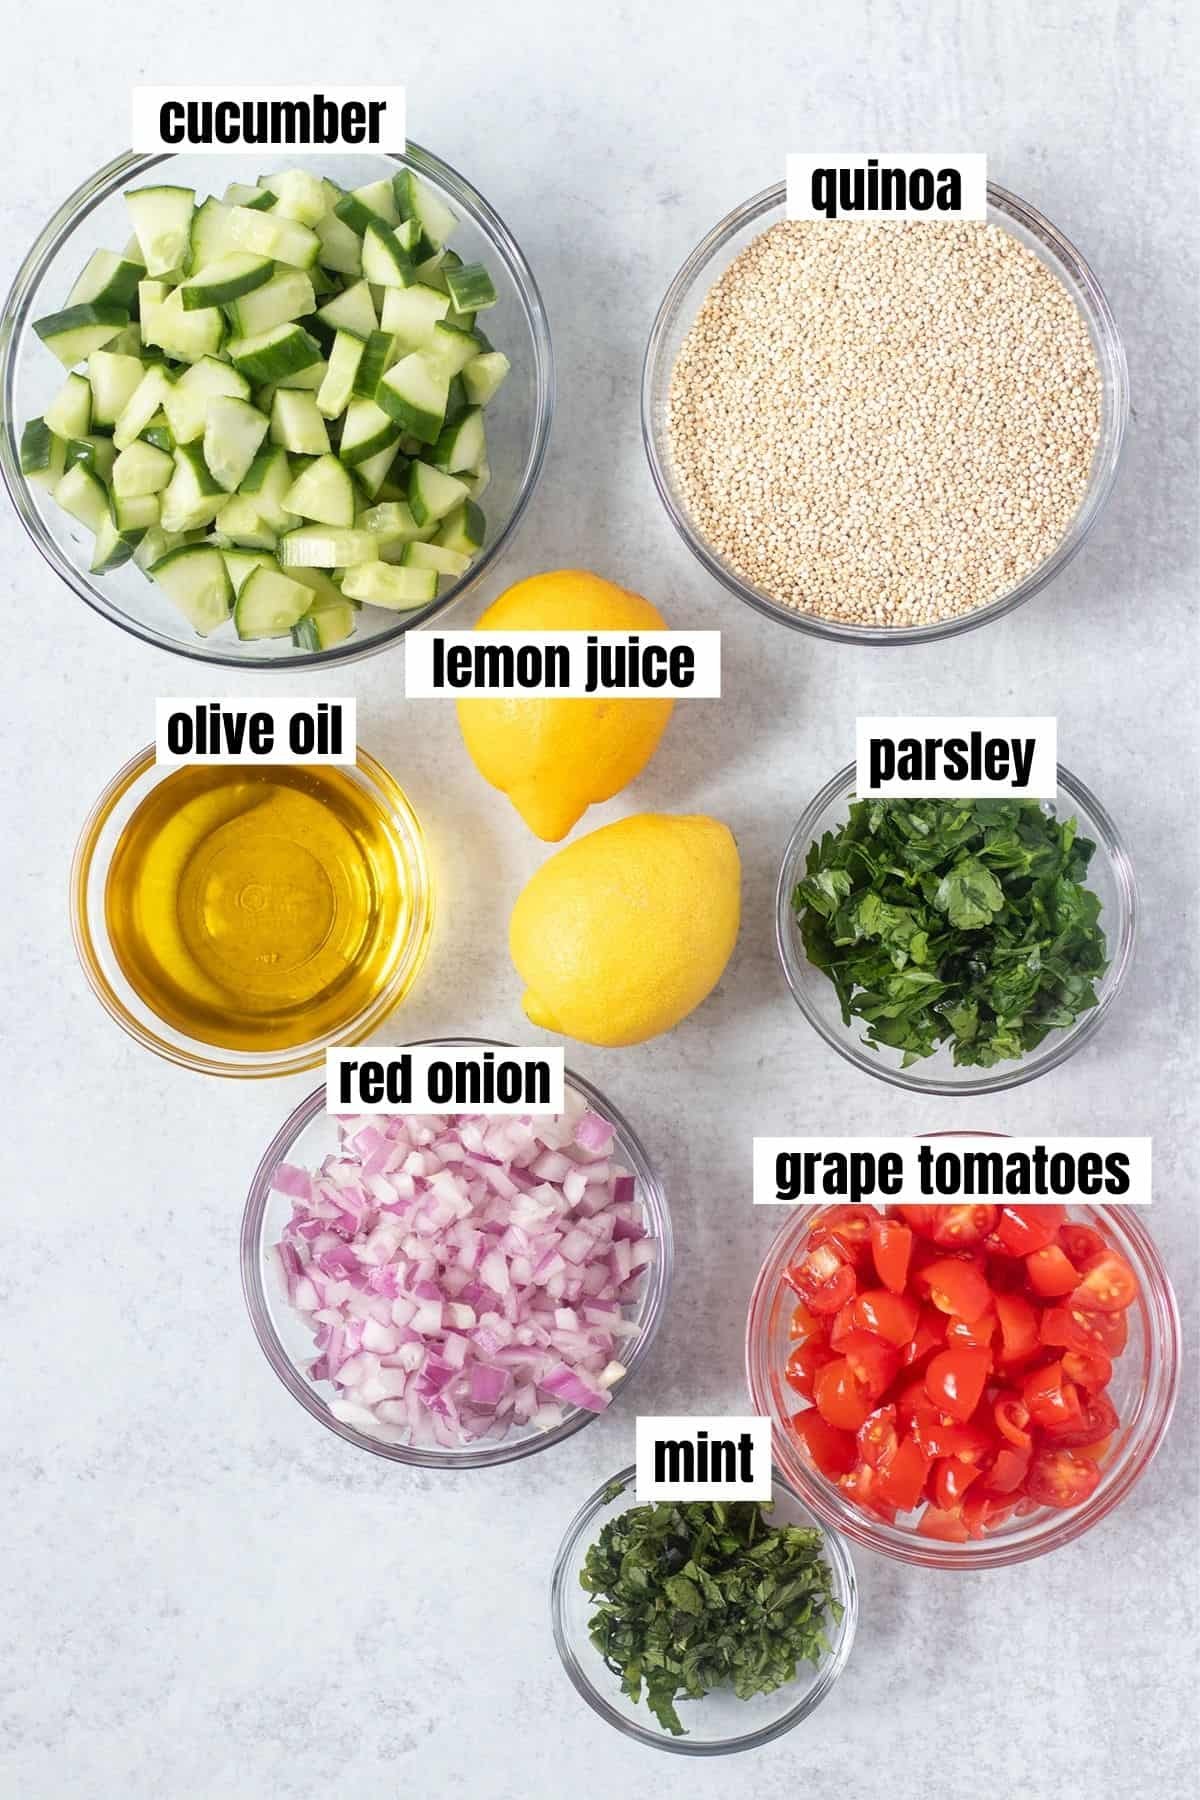 diced cucumber, quinoa, olive oil, lemons, parsley, red onion, tomatoes and mint